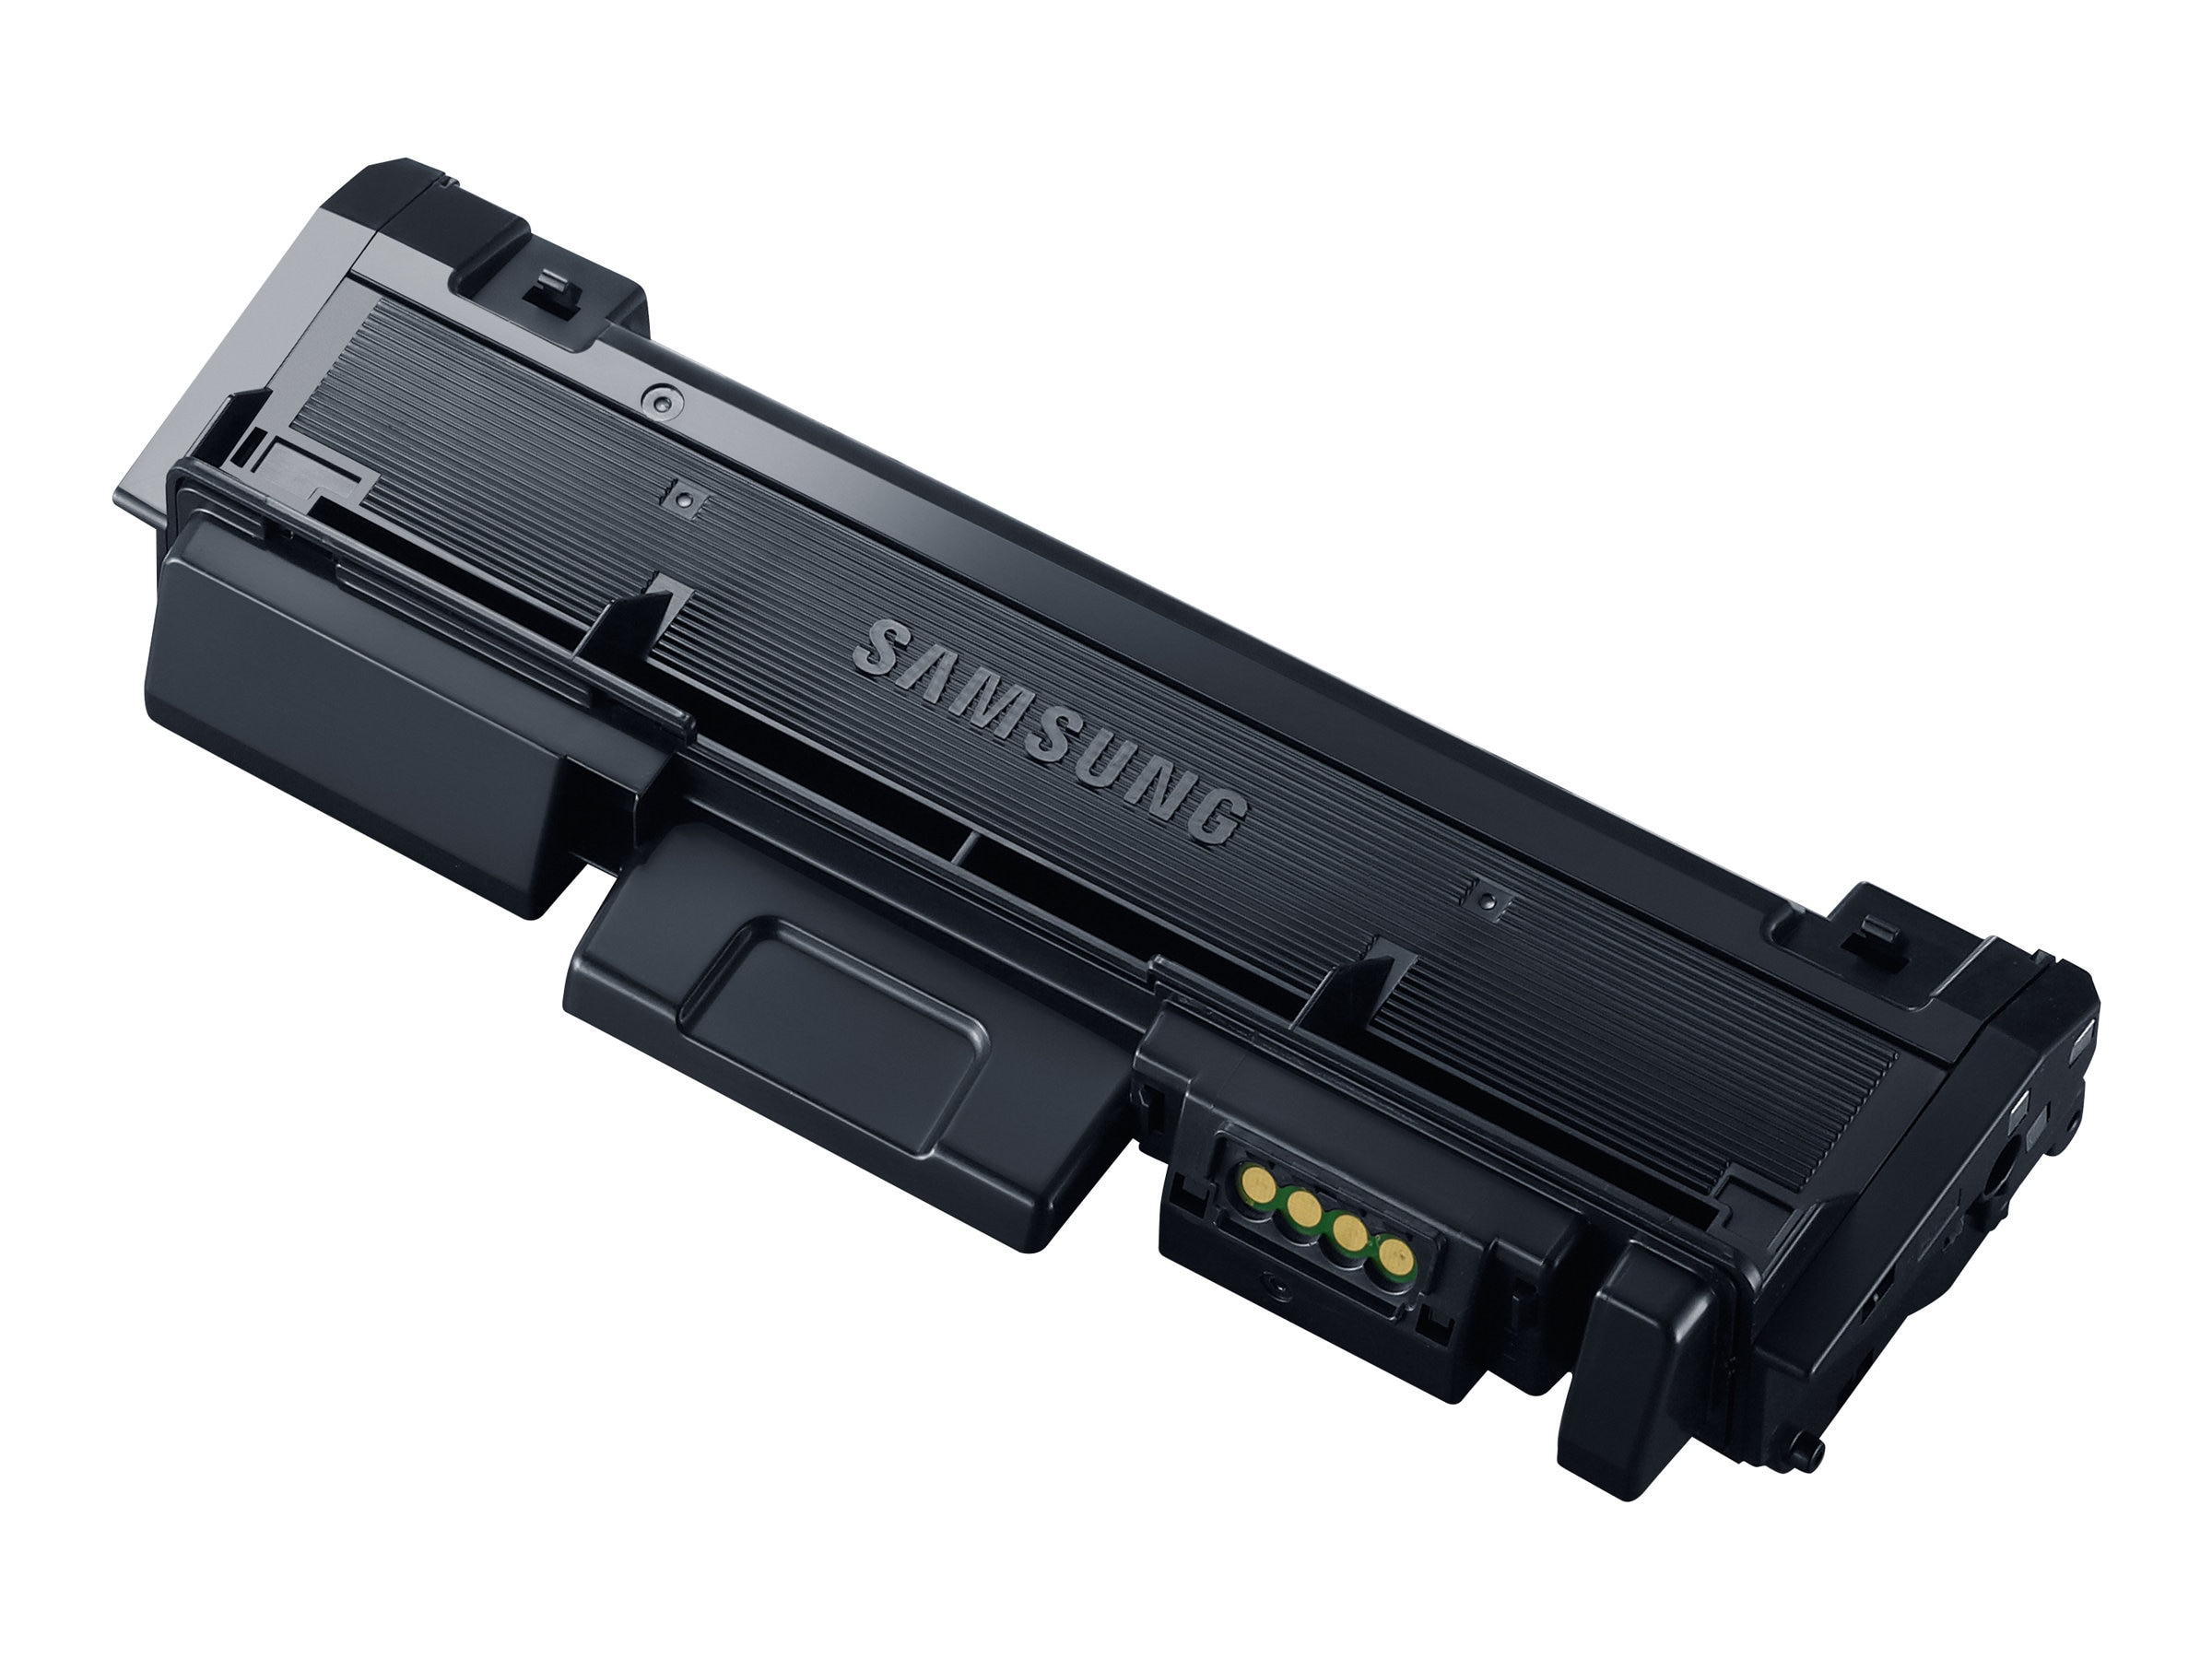 Samsung Black High Yield Toner Cartridge for Xpress M2625D, M2825DW, M2875FD, M2875FW, M2835DW & M2885FW, MLT-D116L/XAA, 31174880, Toner and Imaging Components